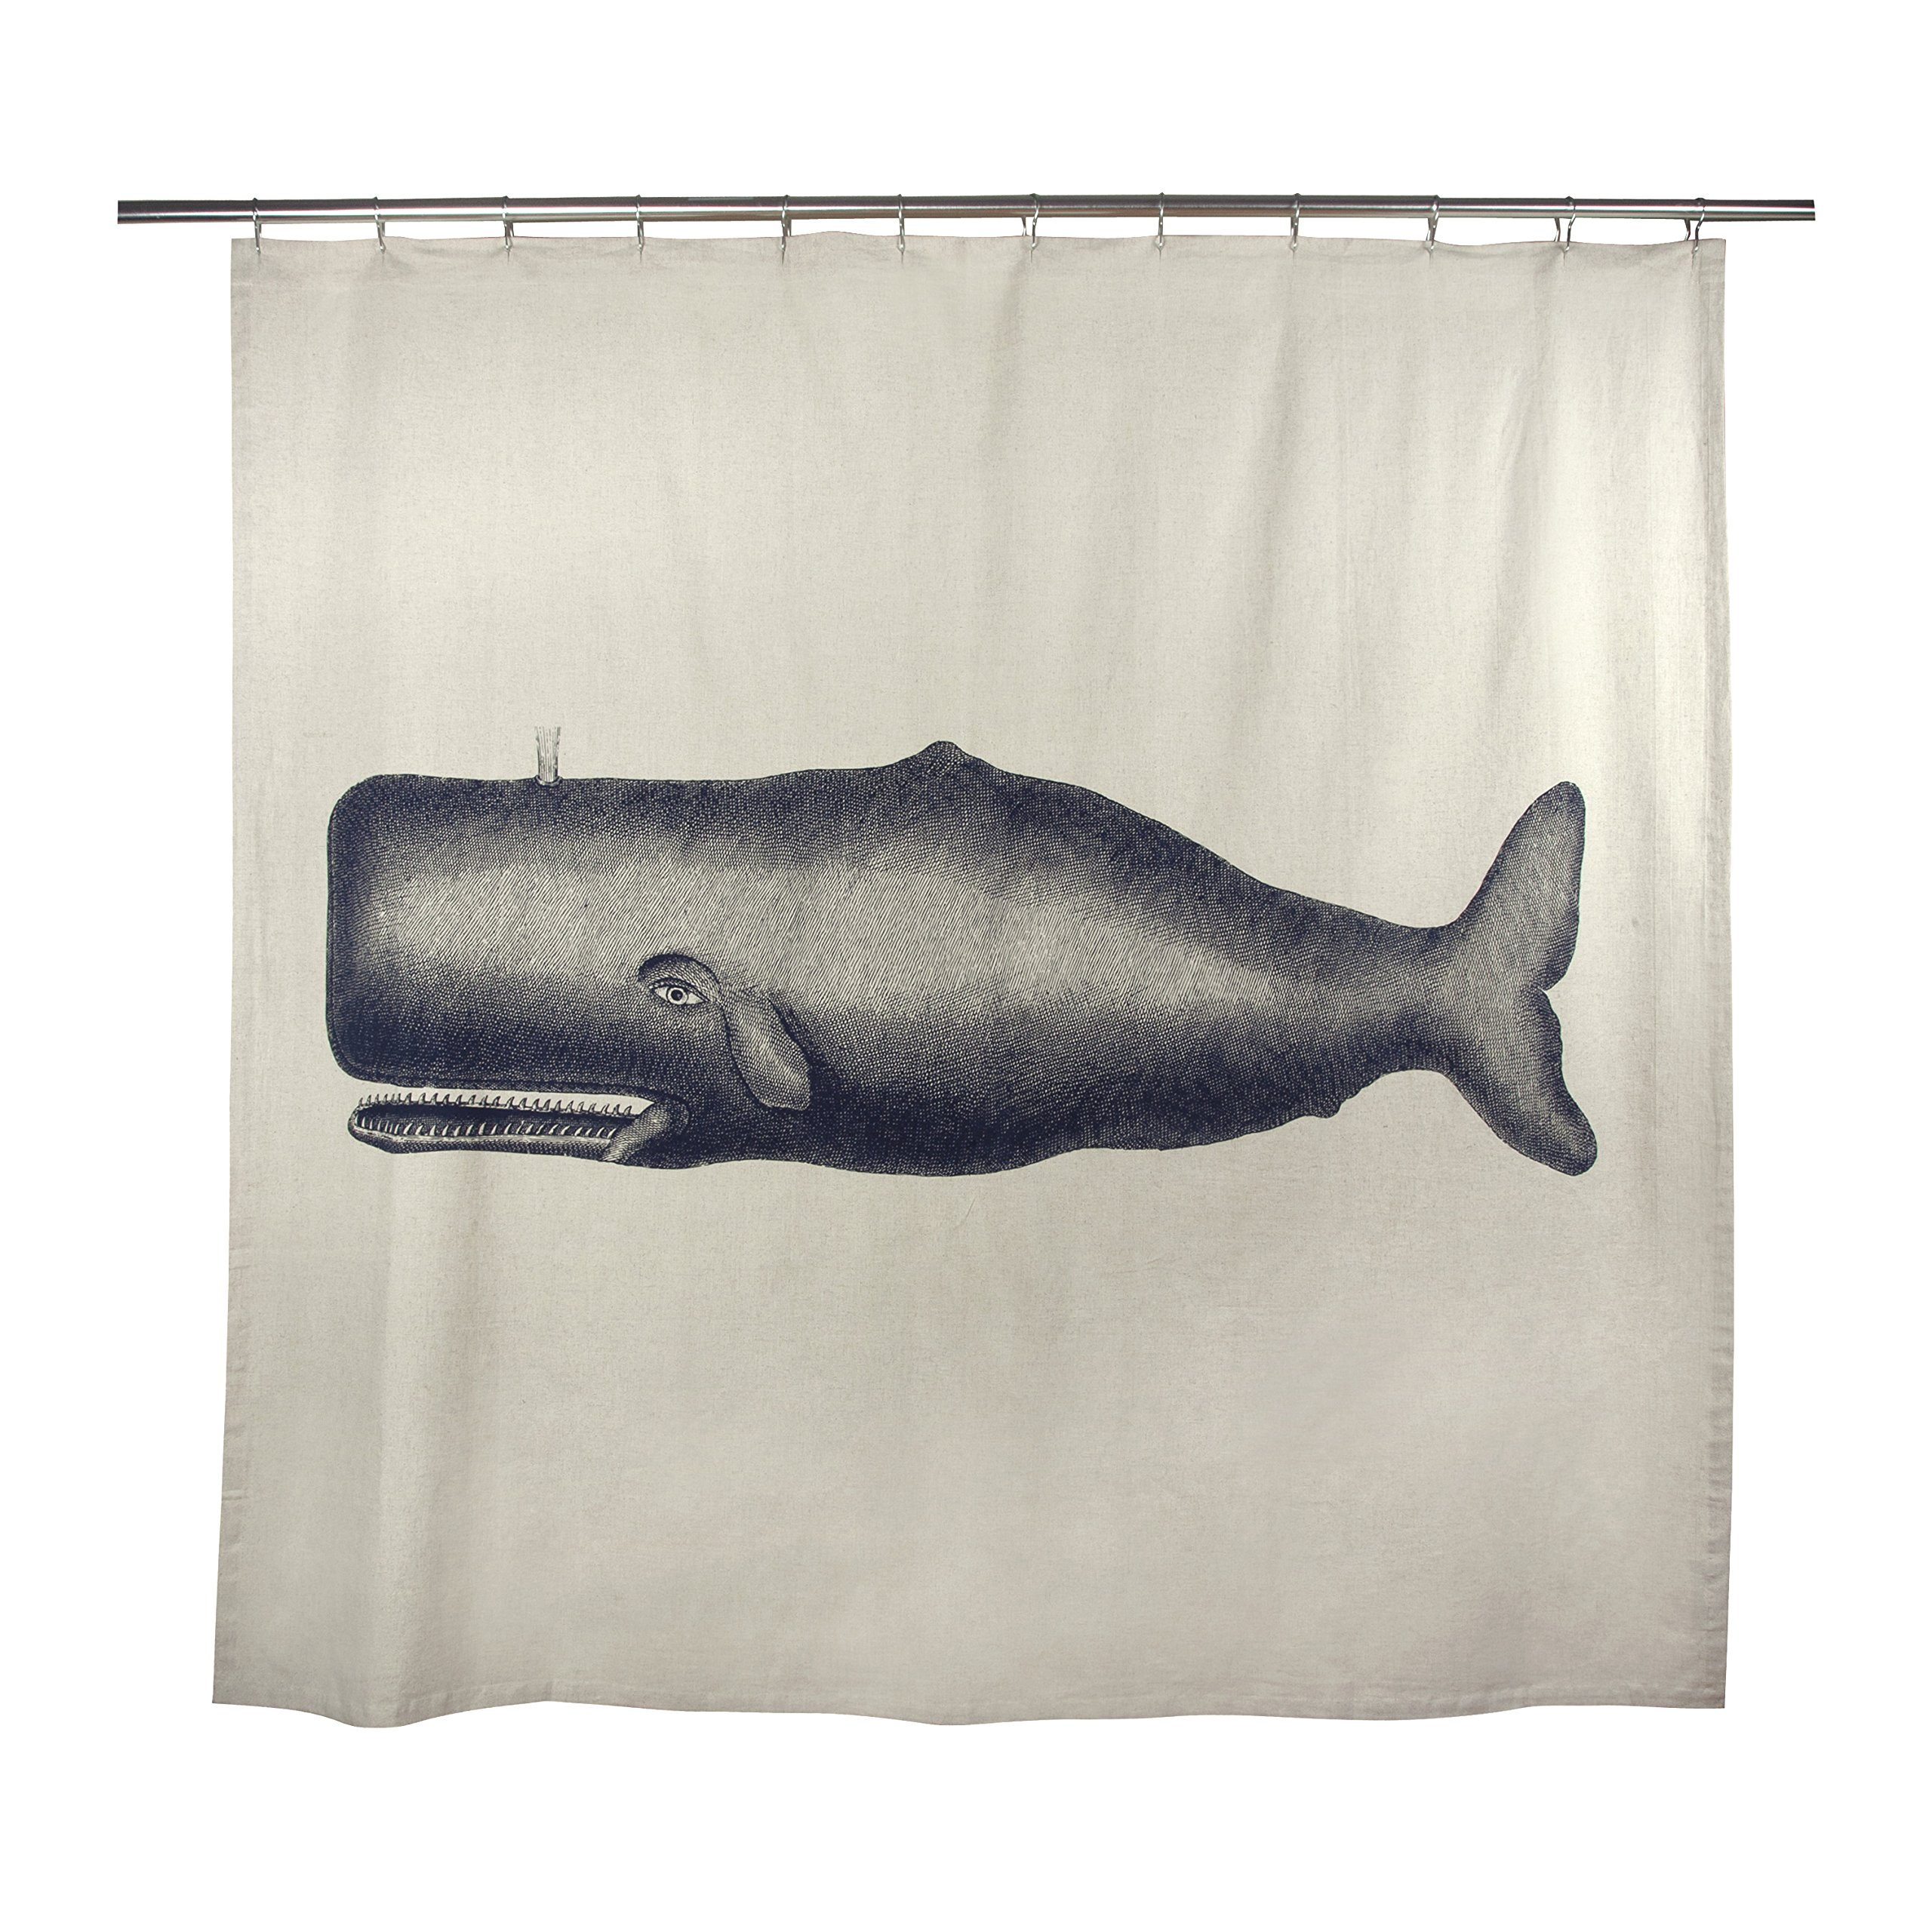 thomaspaul Moby Shower Curtain, Ink